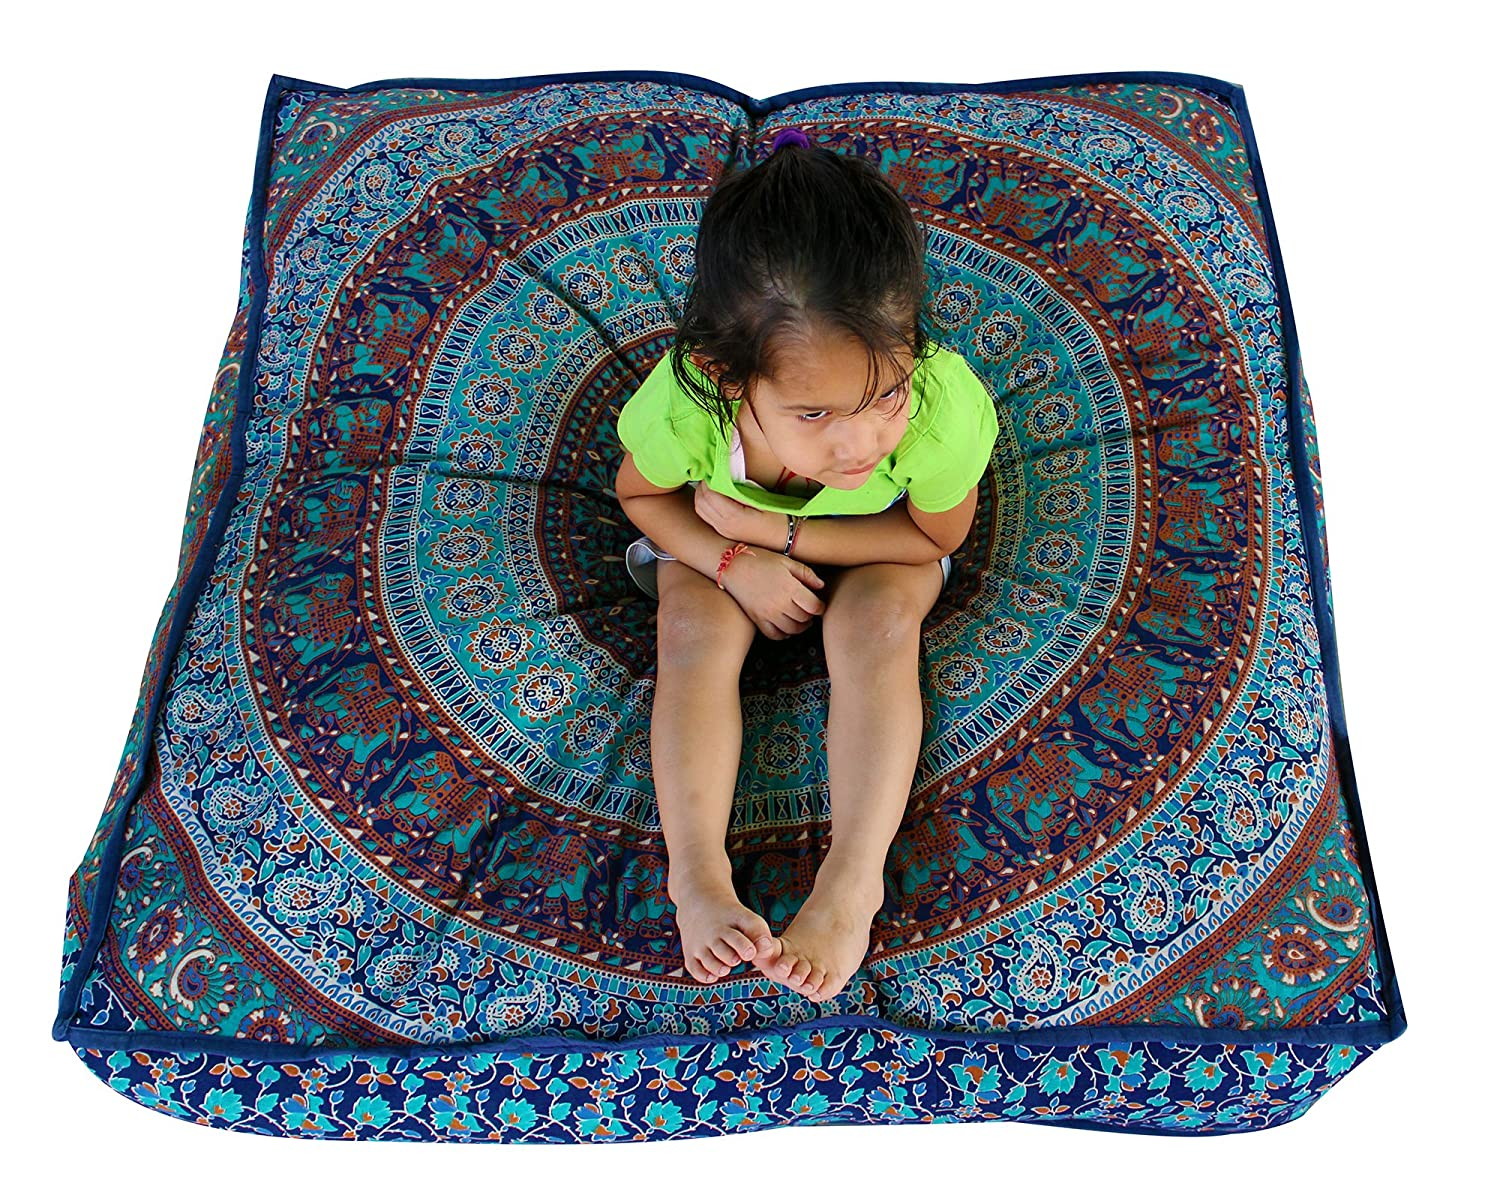 Third Eye Export Indian Mandala Floor Pillow Square Ottoman Pouf Daybed Oversized Cushion Cover Cotton Seating Ottoman Poufs Dog/Pets Bed (Blue 12 MASI Cover) DBC-1